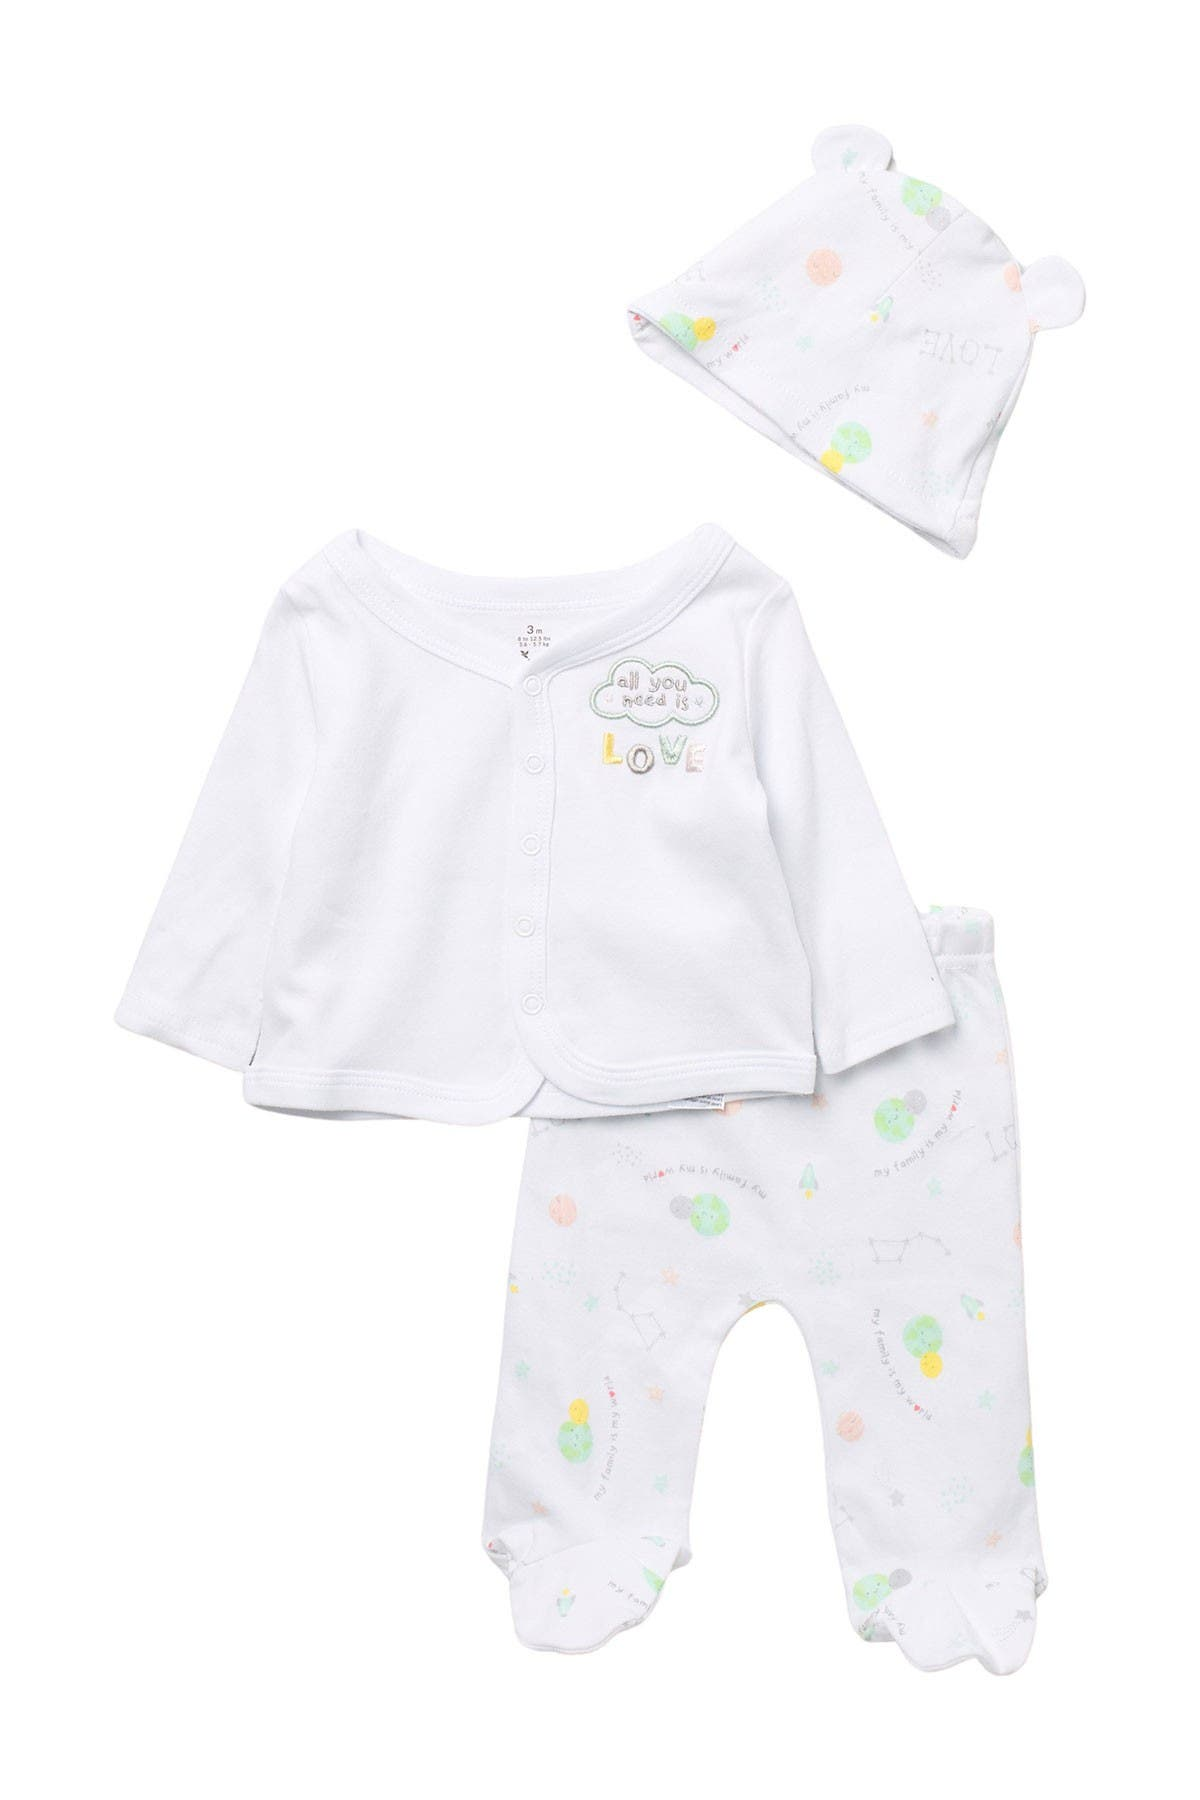 Image of Baby Starters Take Me Home 3 Piece Set